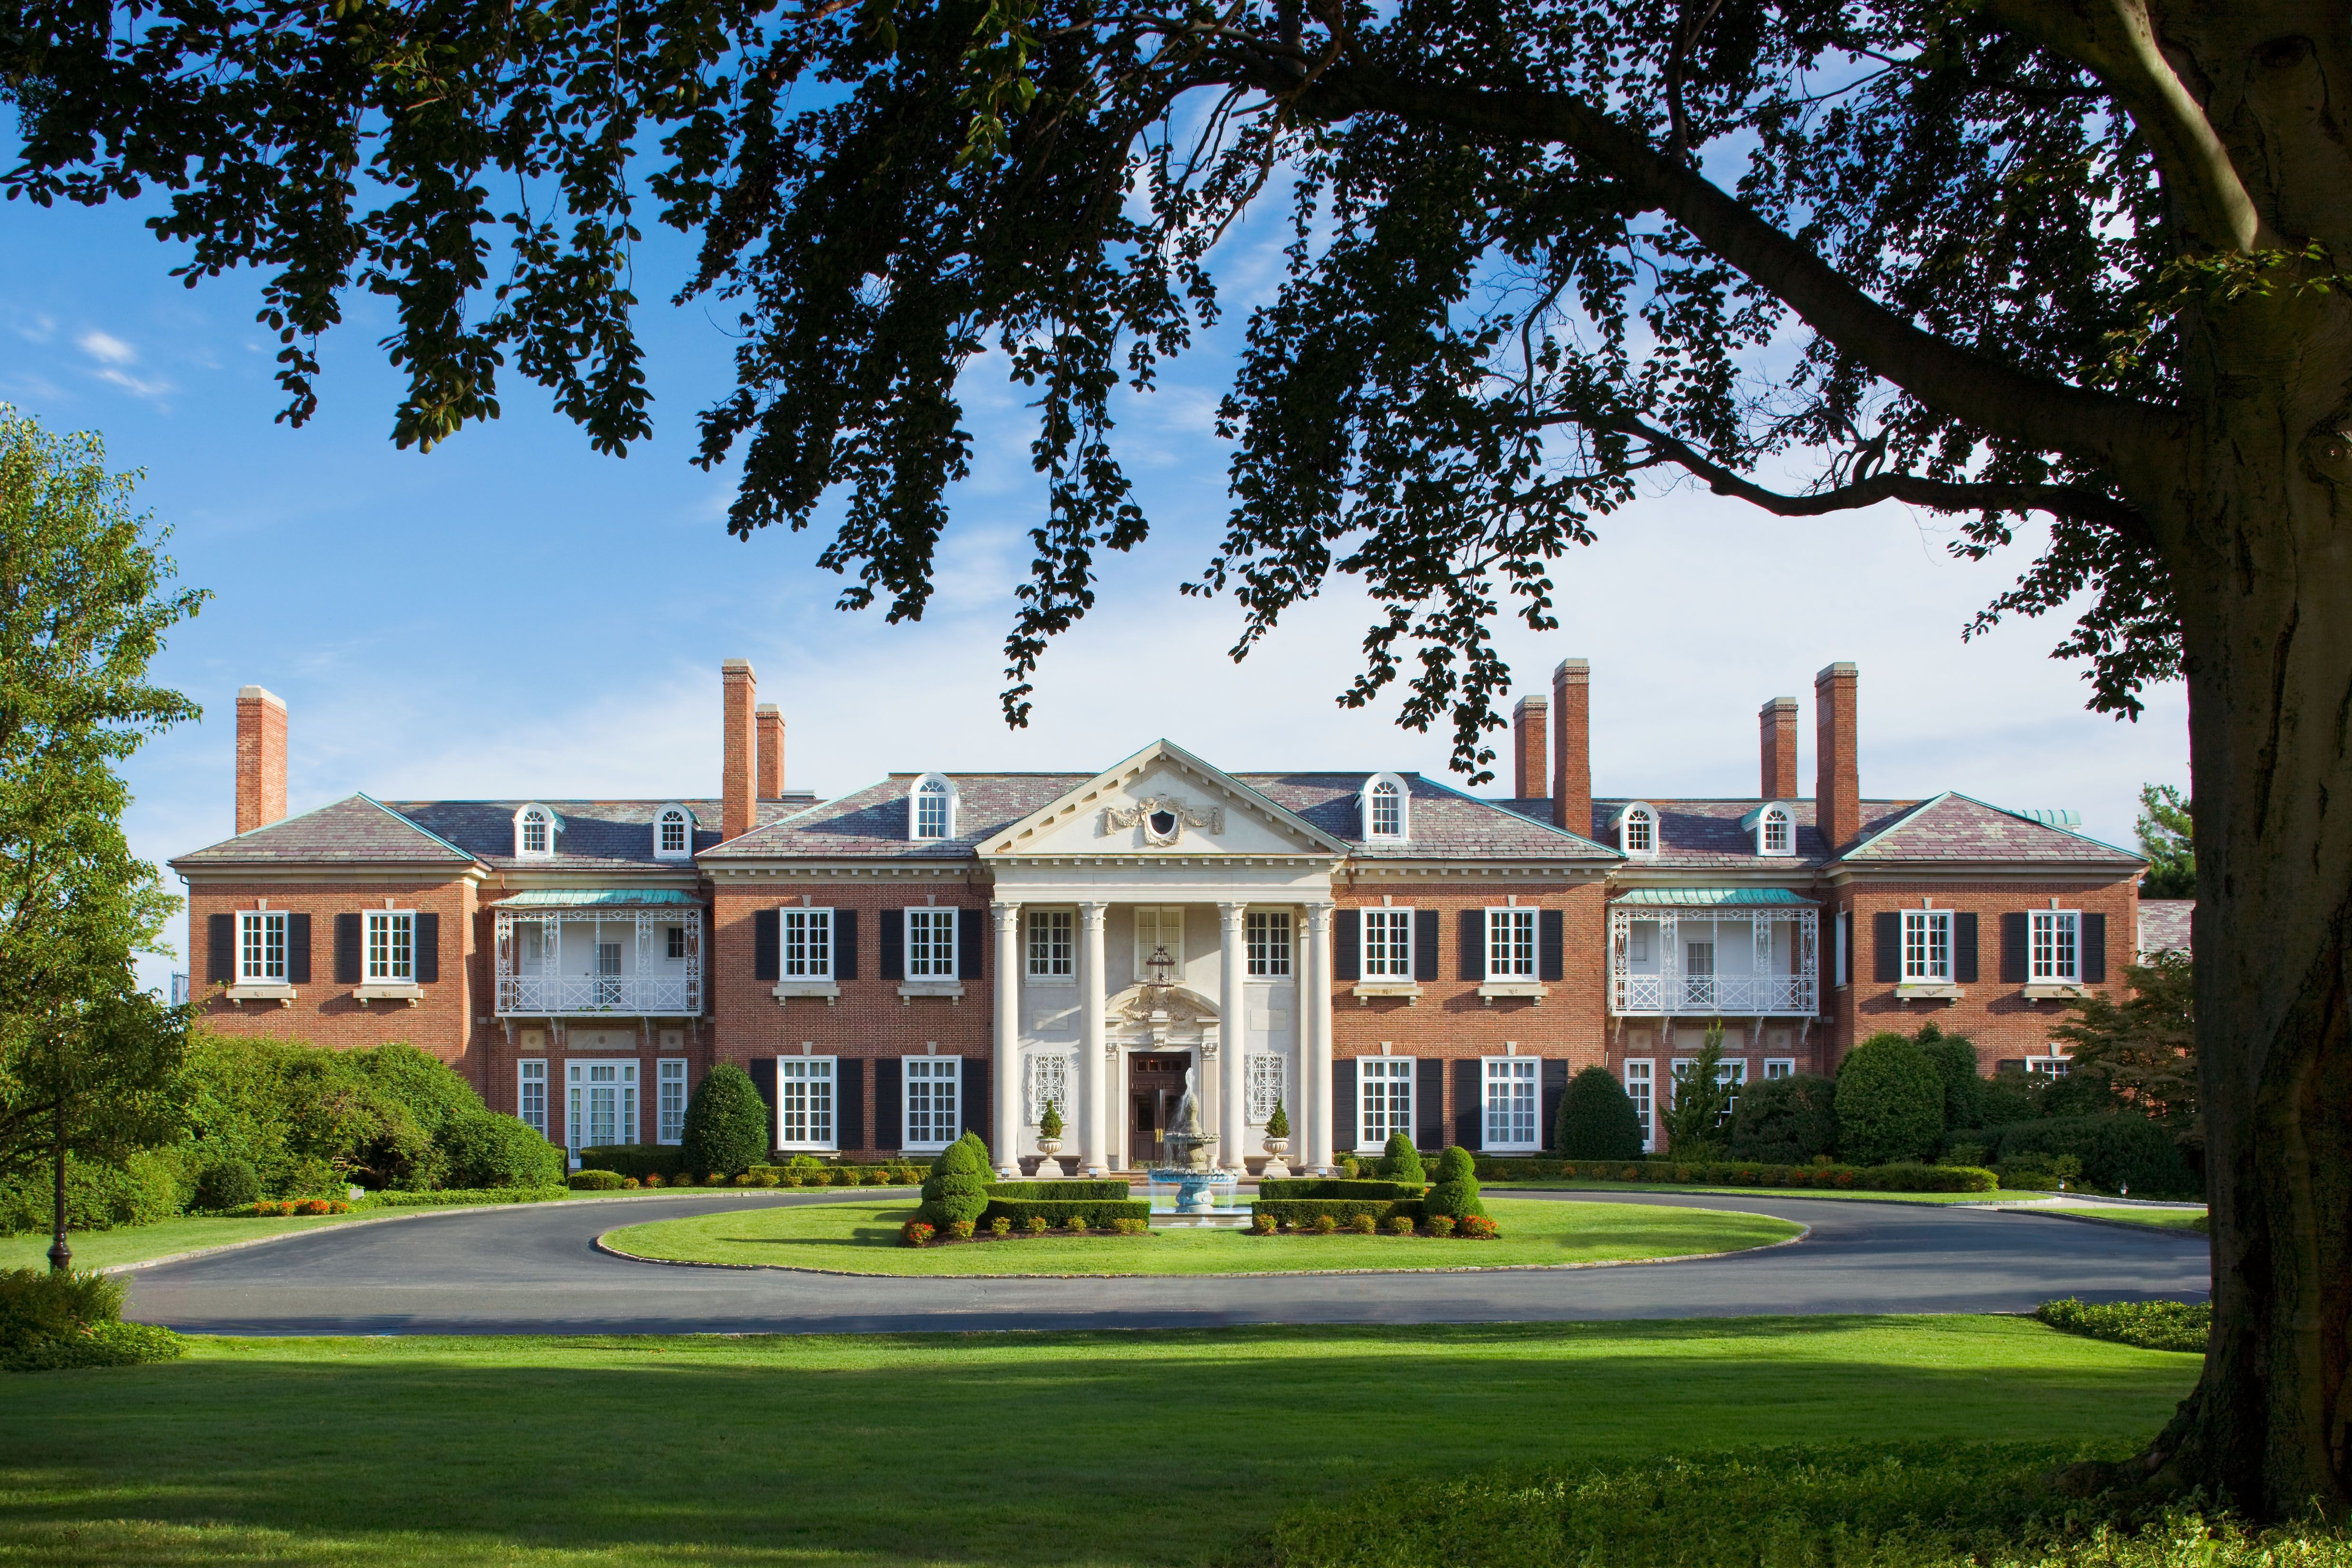 The Mansion From The Great Lawn Glen Cove Mansion Mansions Long Island Mansion